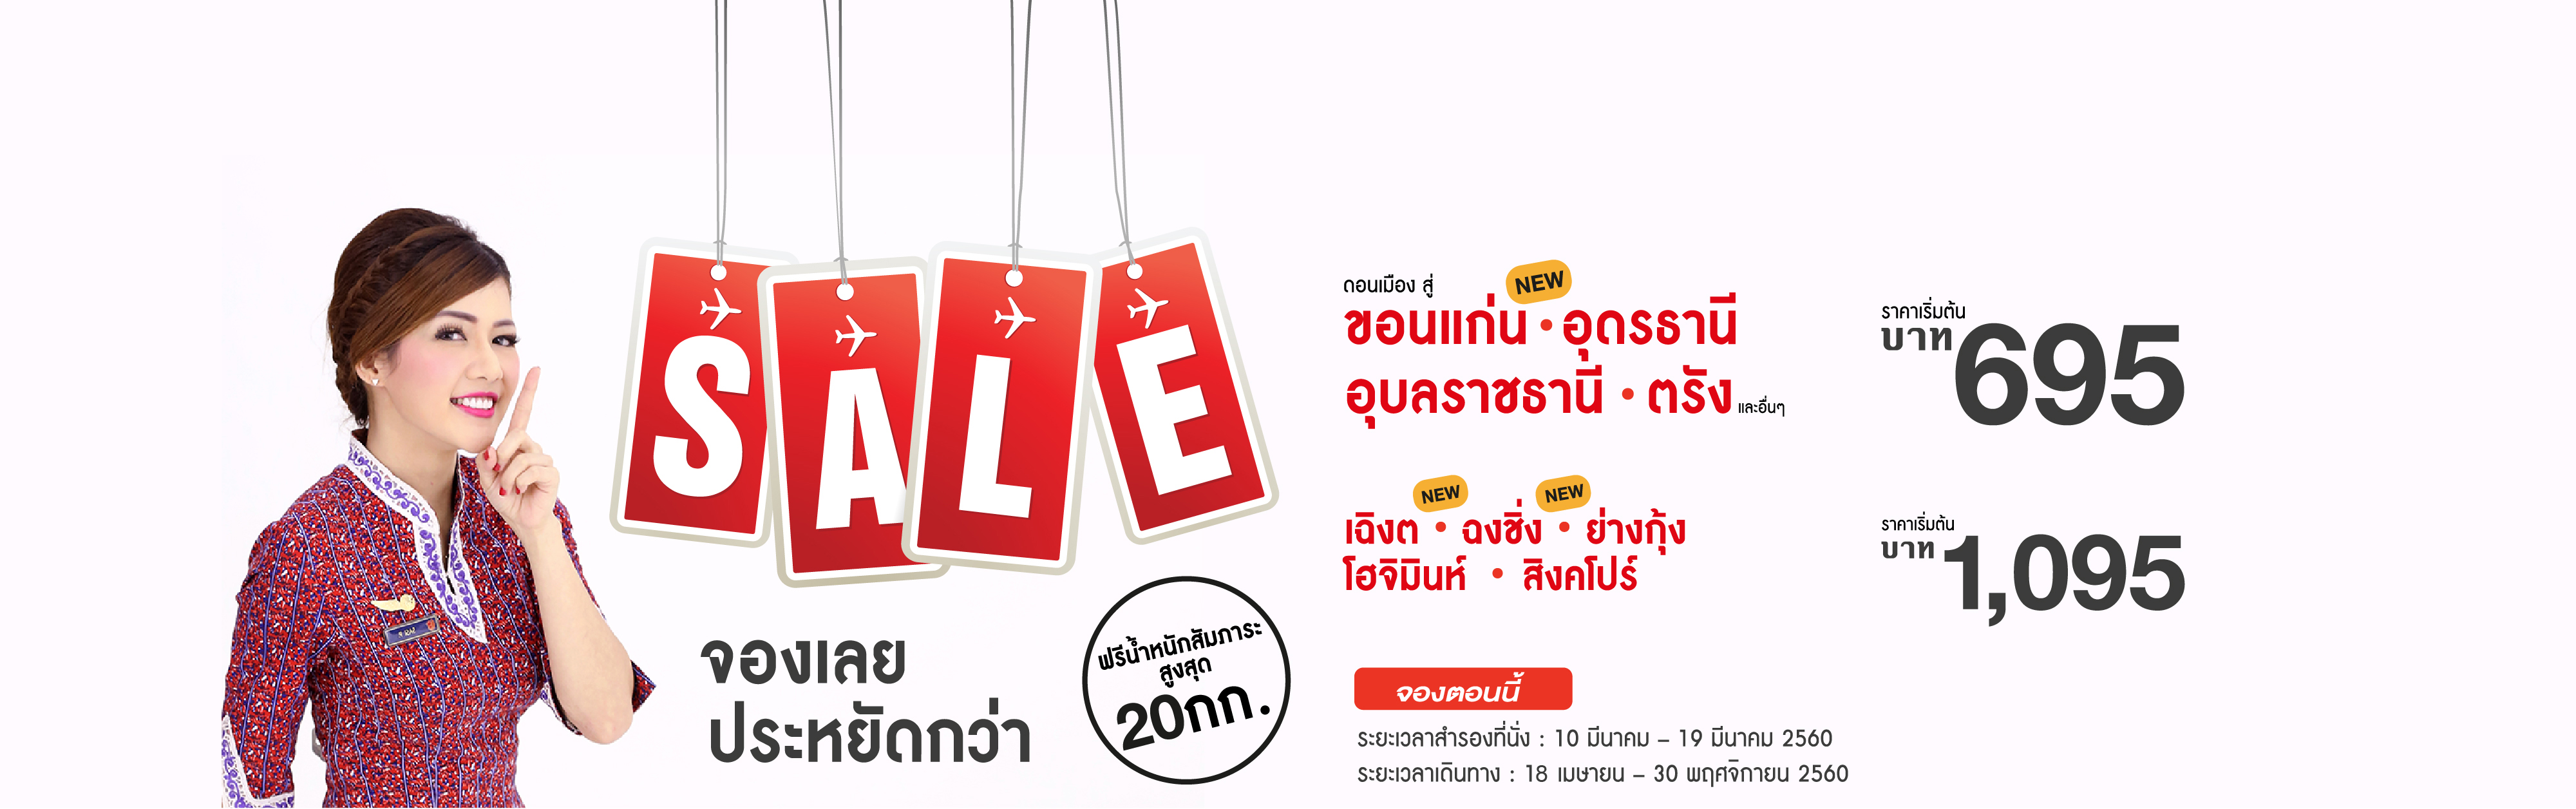 thailionair-promotion-2017-buy-now-save-more